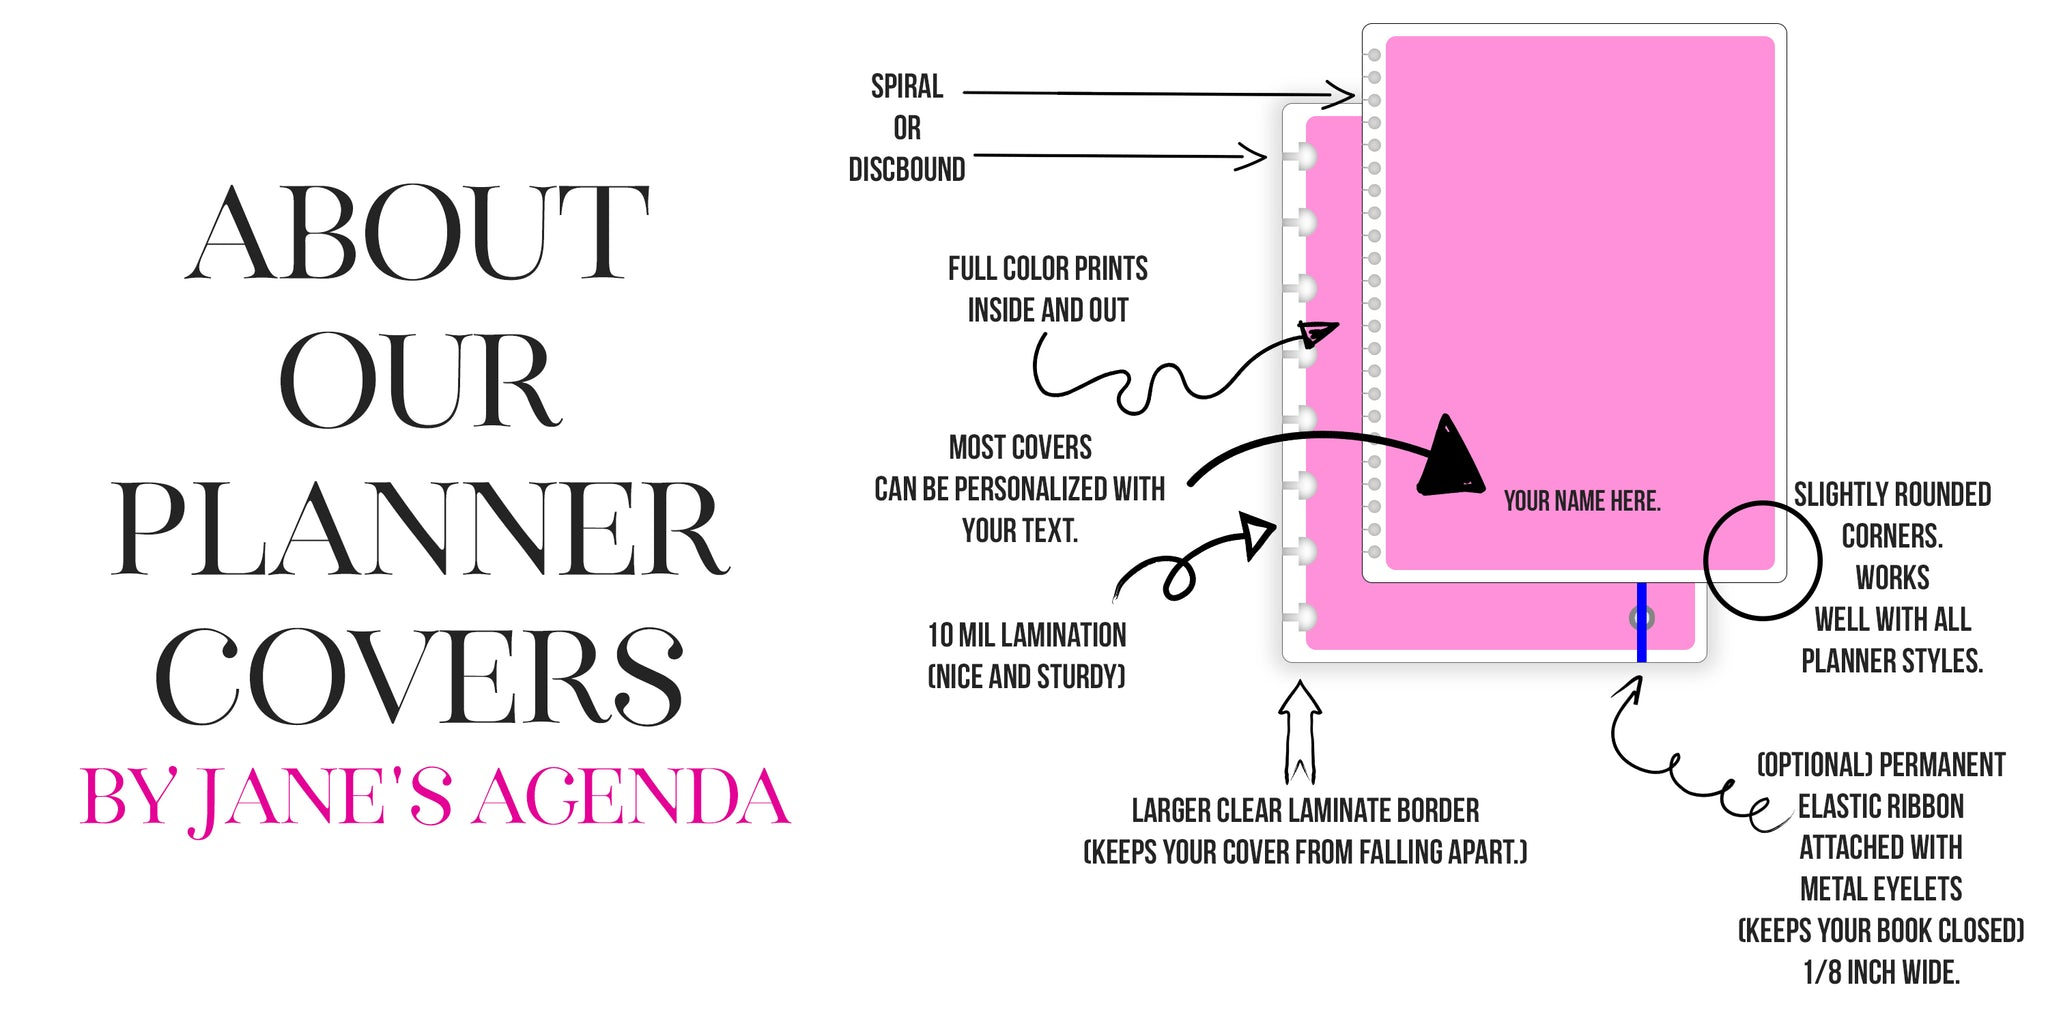 About Our Planner Covers by Jane's Agenda